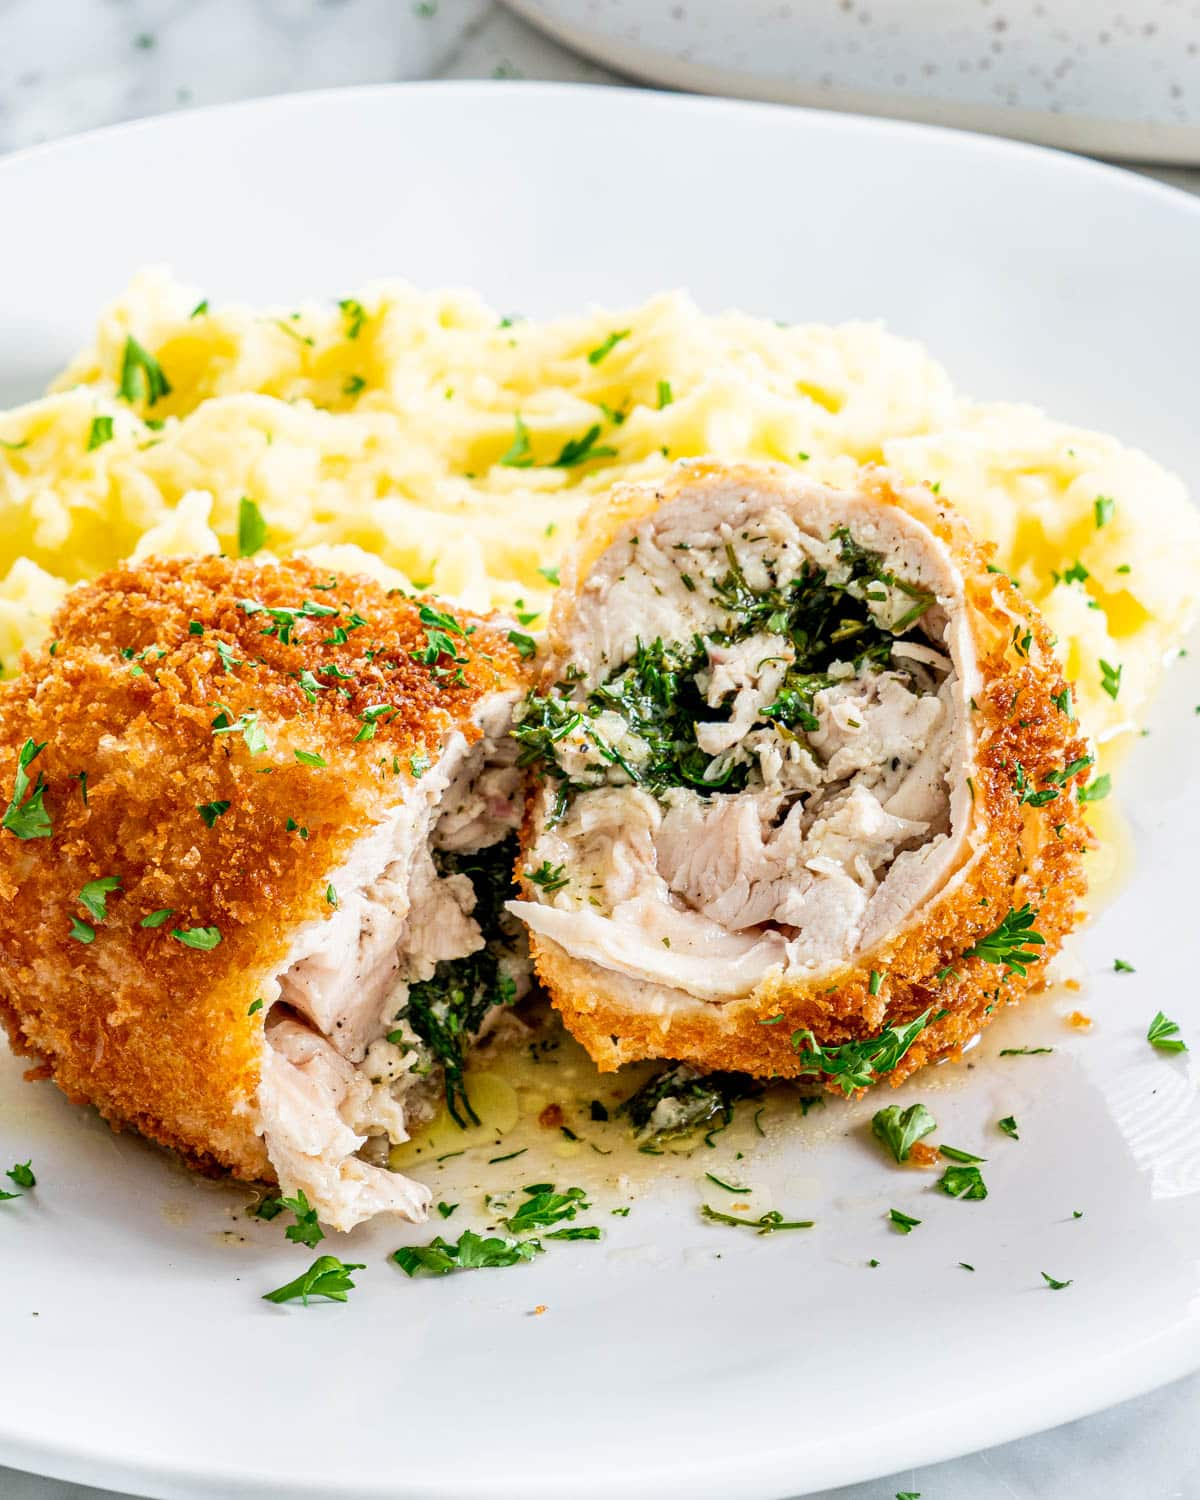 a plate of chicken kiev with mashed potatoes